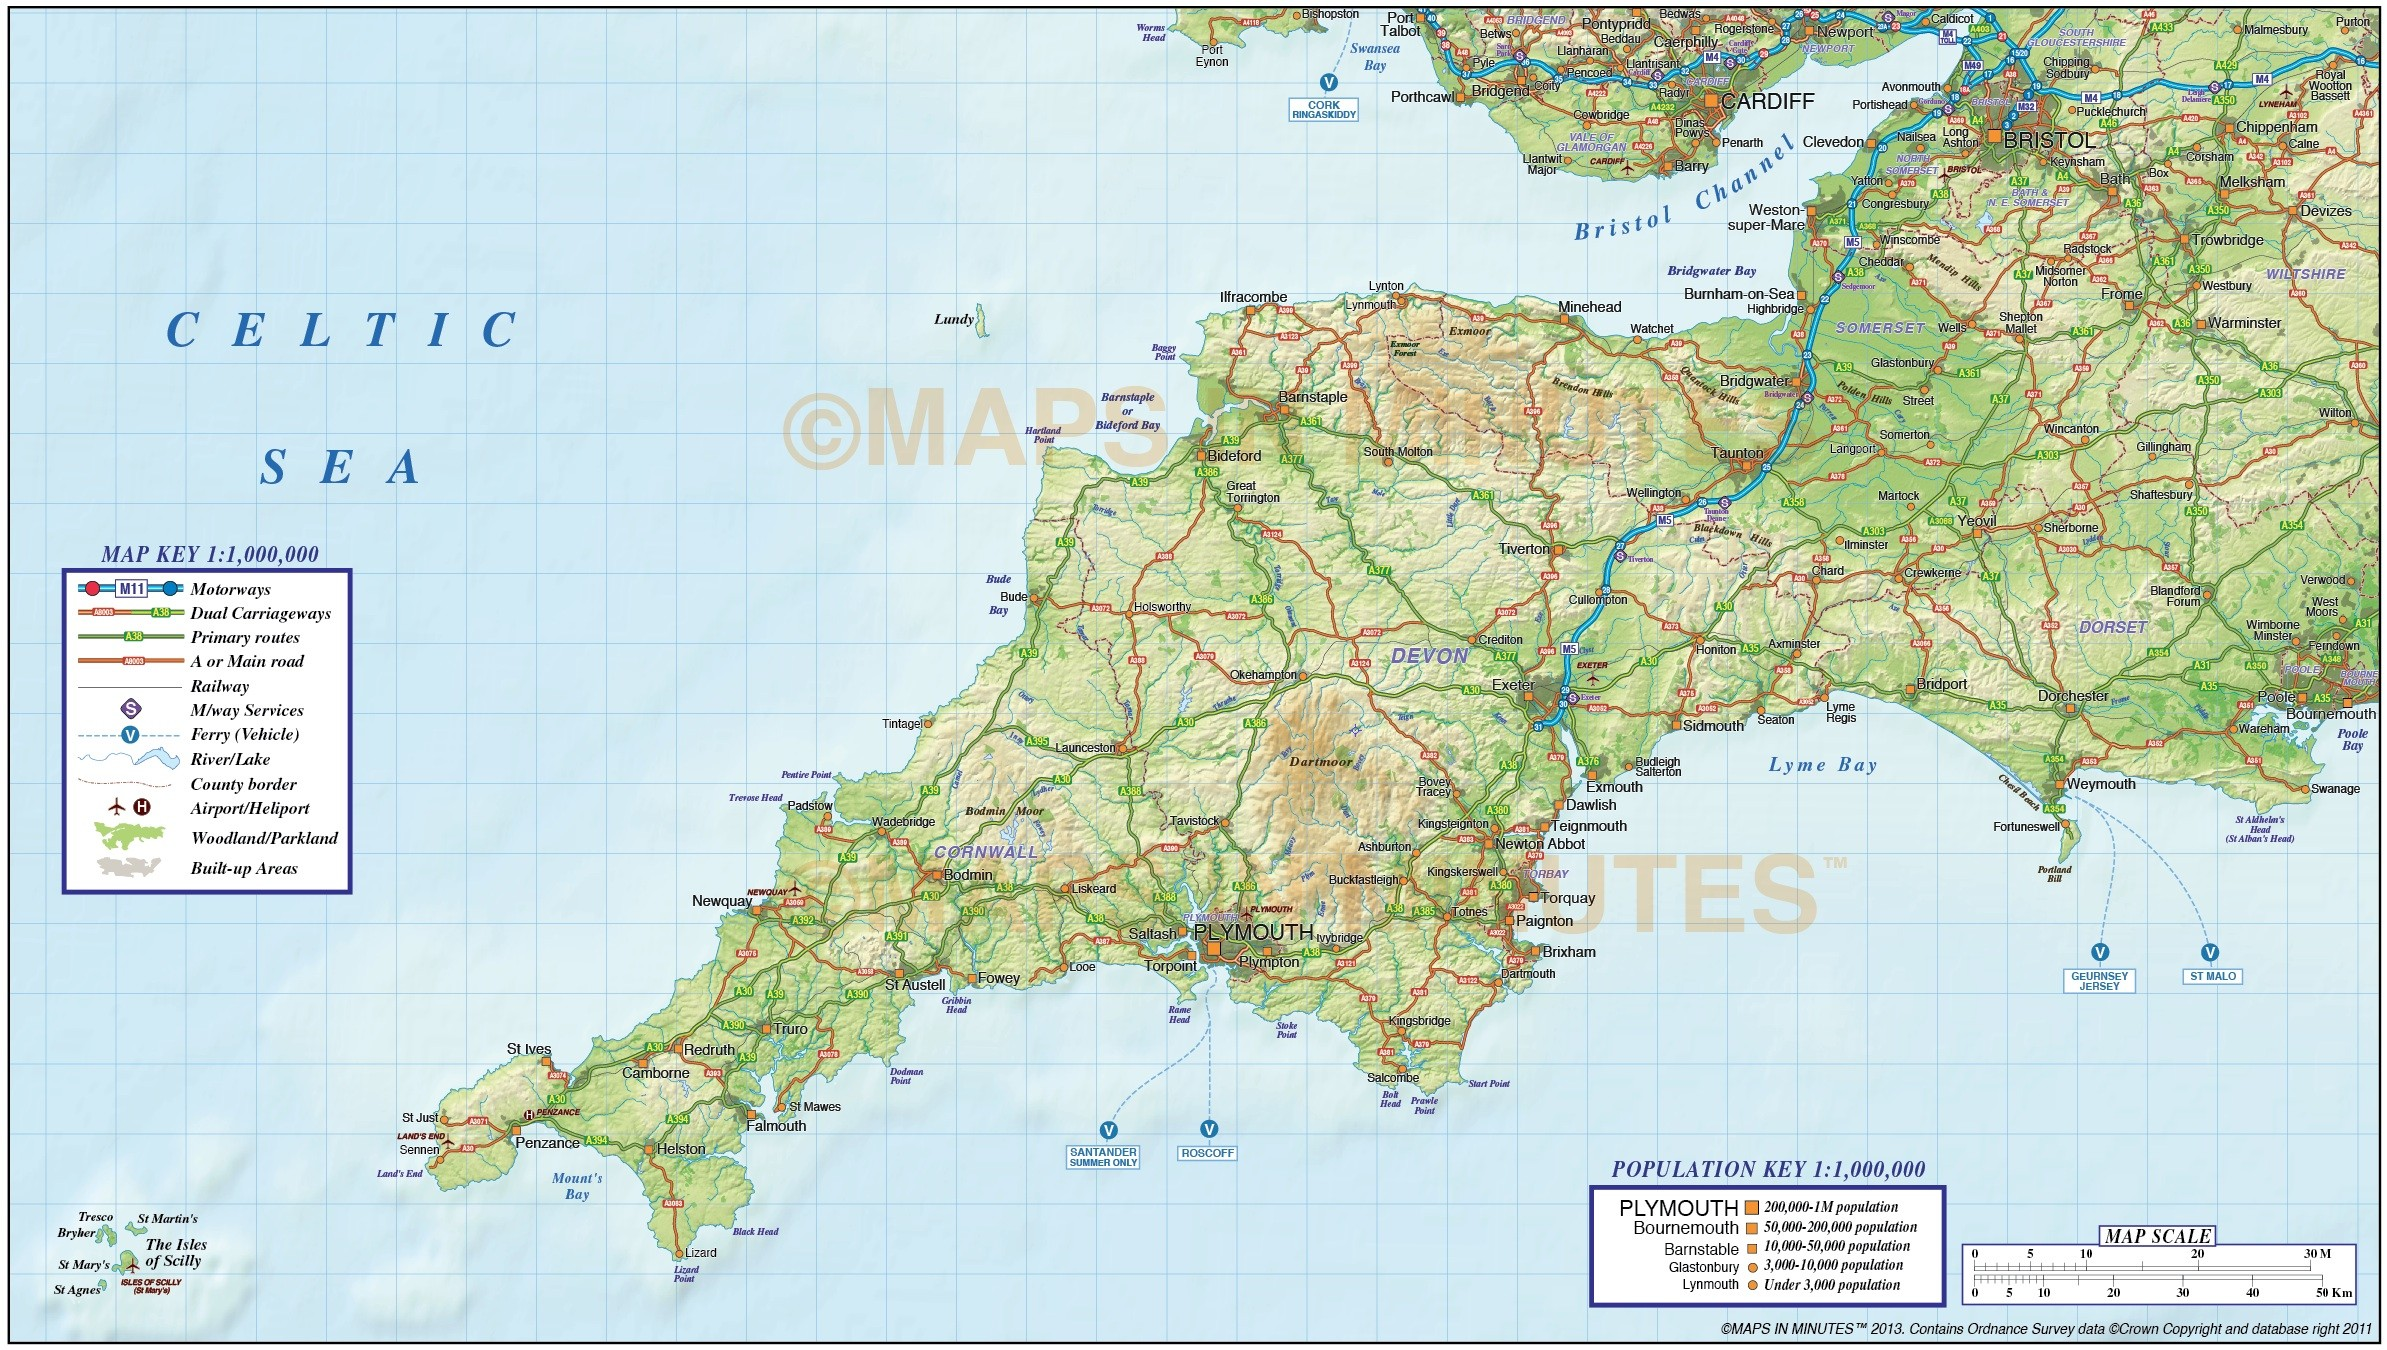 south west england map South West England County Road Rail Map With Regular Relief 1m